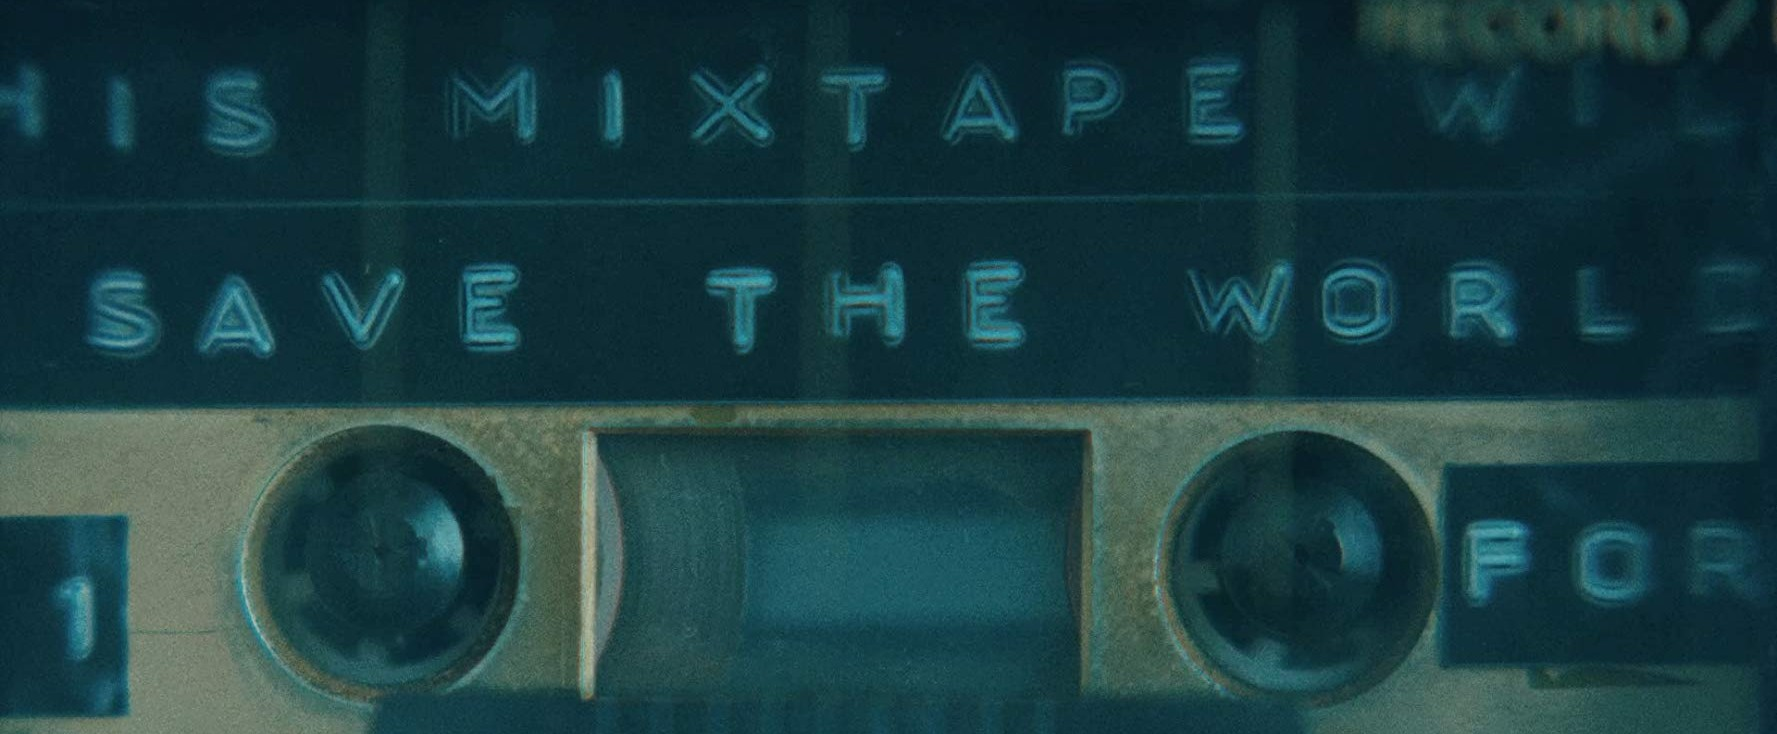 Mixtape is right. It's an eclectic soundtrack.